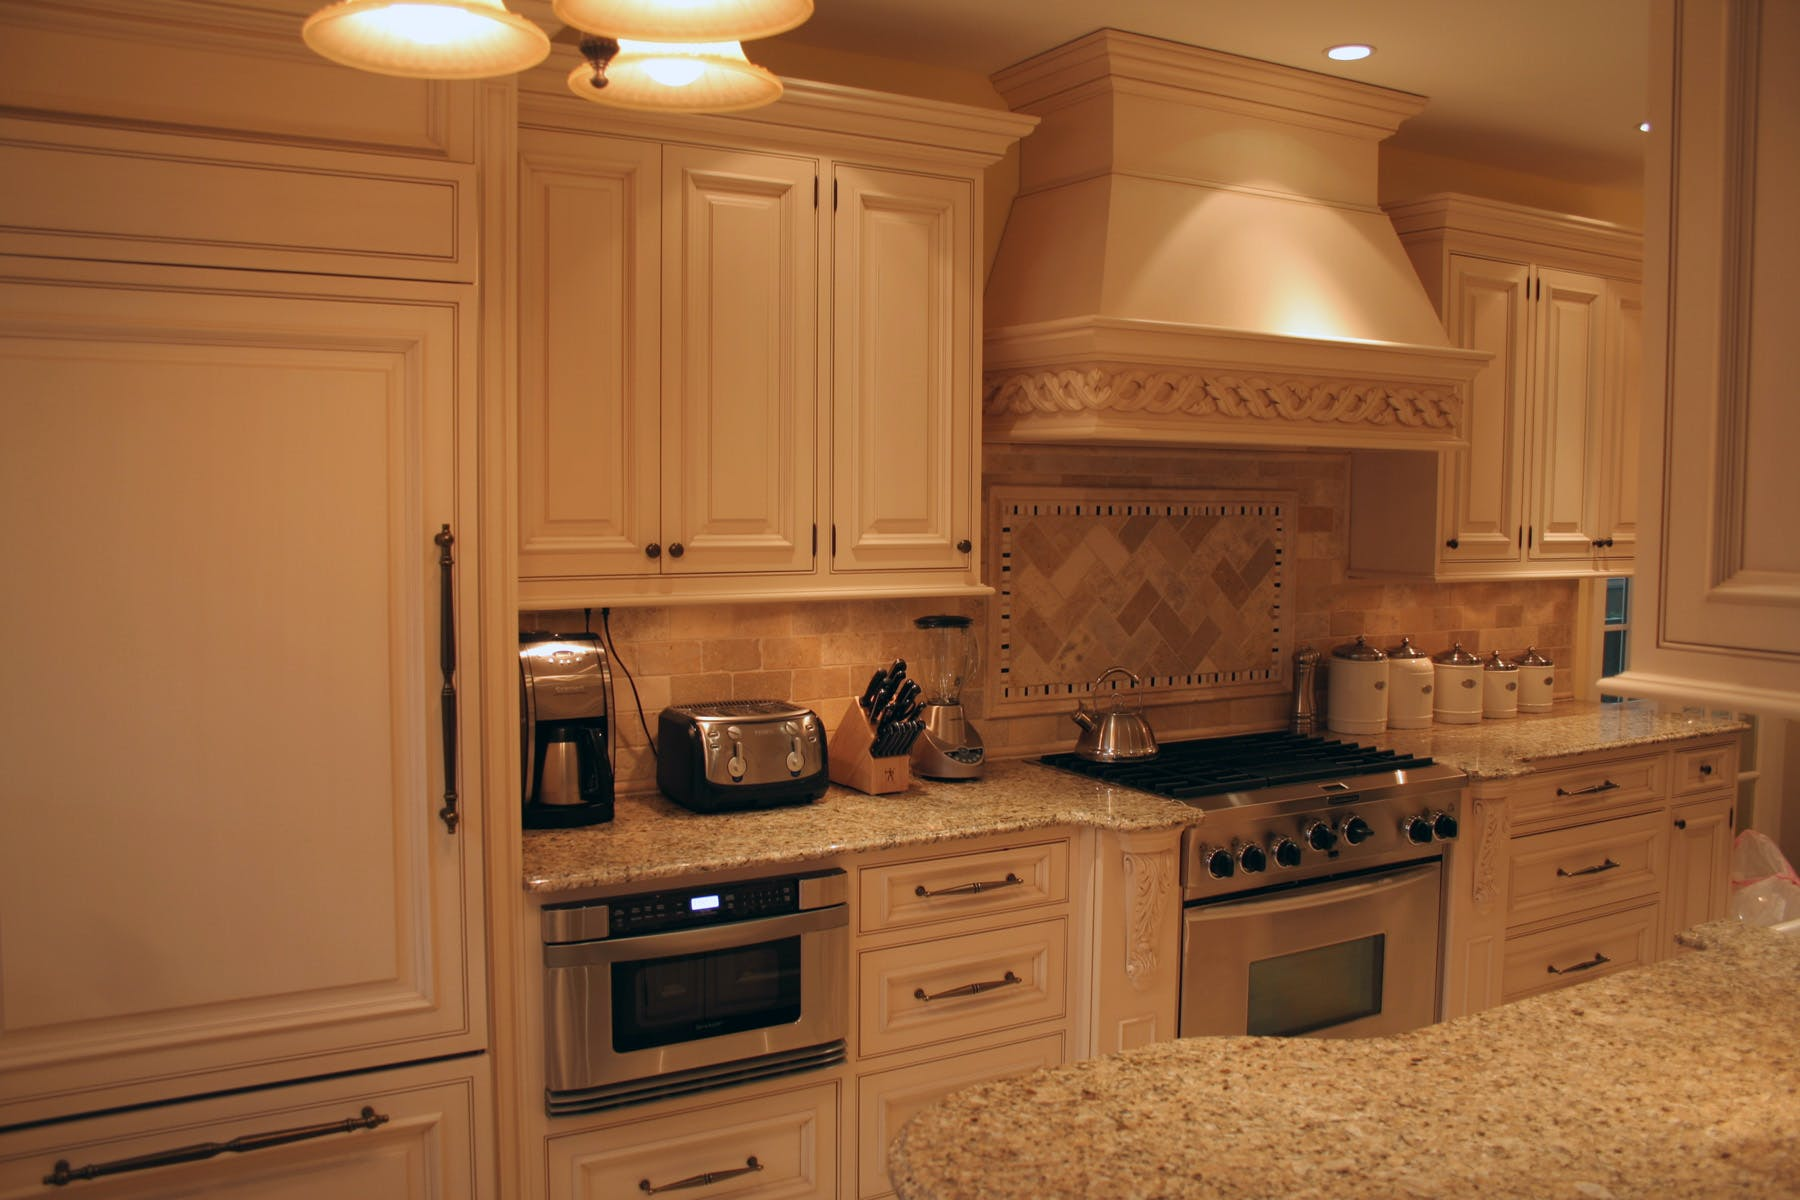 100 kitchen cabinets in brooklyn ny marble and for Kitchen cabinets brooklyn